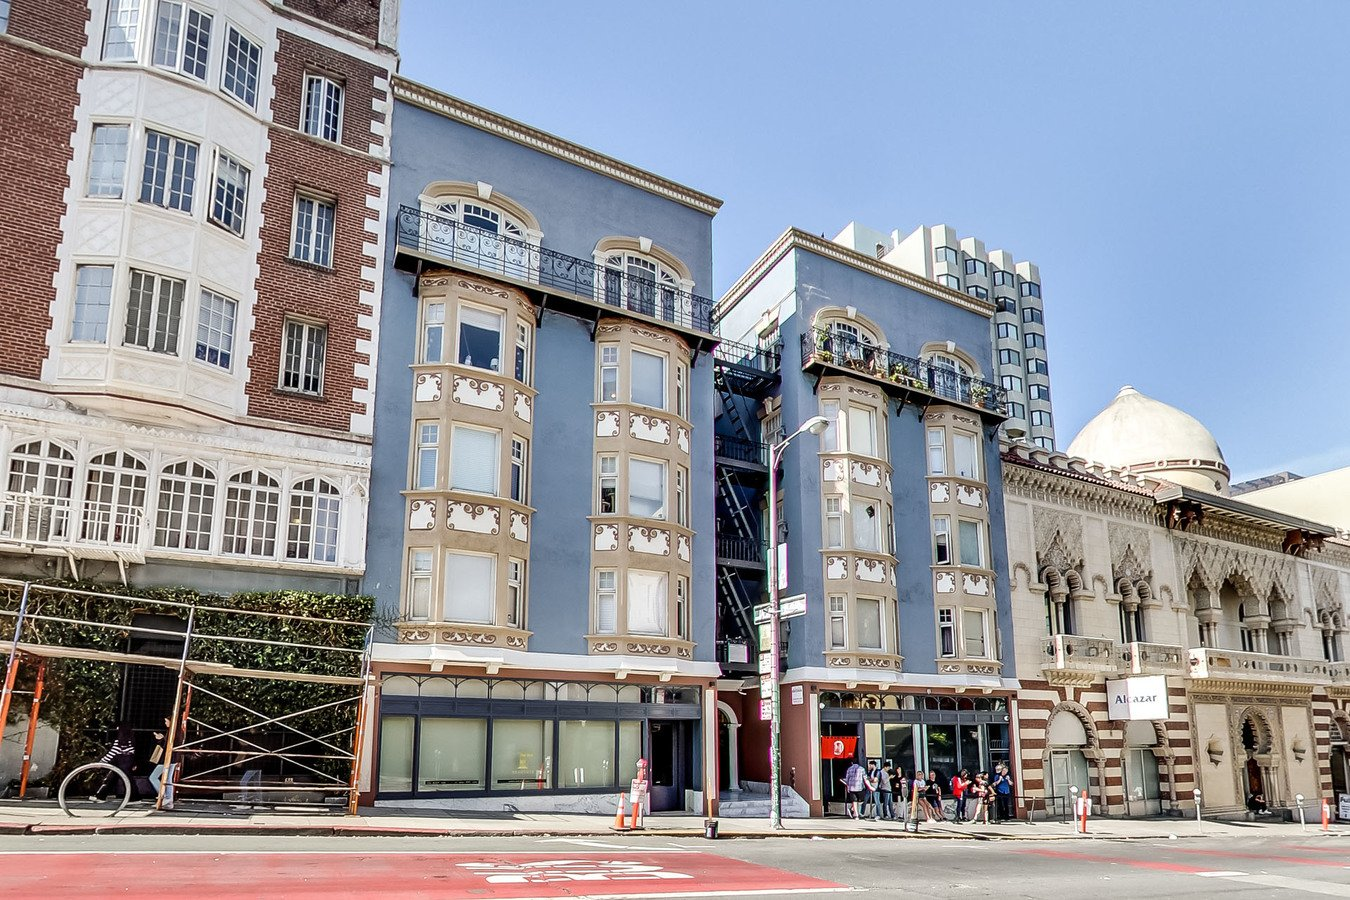 2 Bedrooms 1 Bathroom Apartment for rent at 676 Geary Apartments in San Francisco, CA